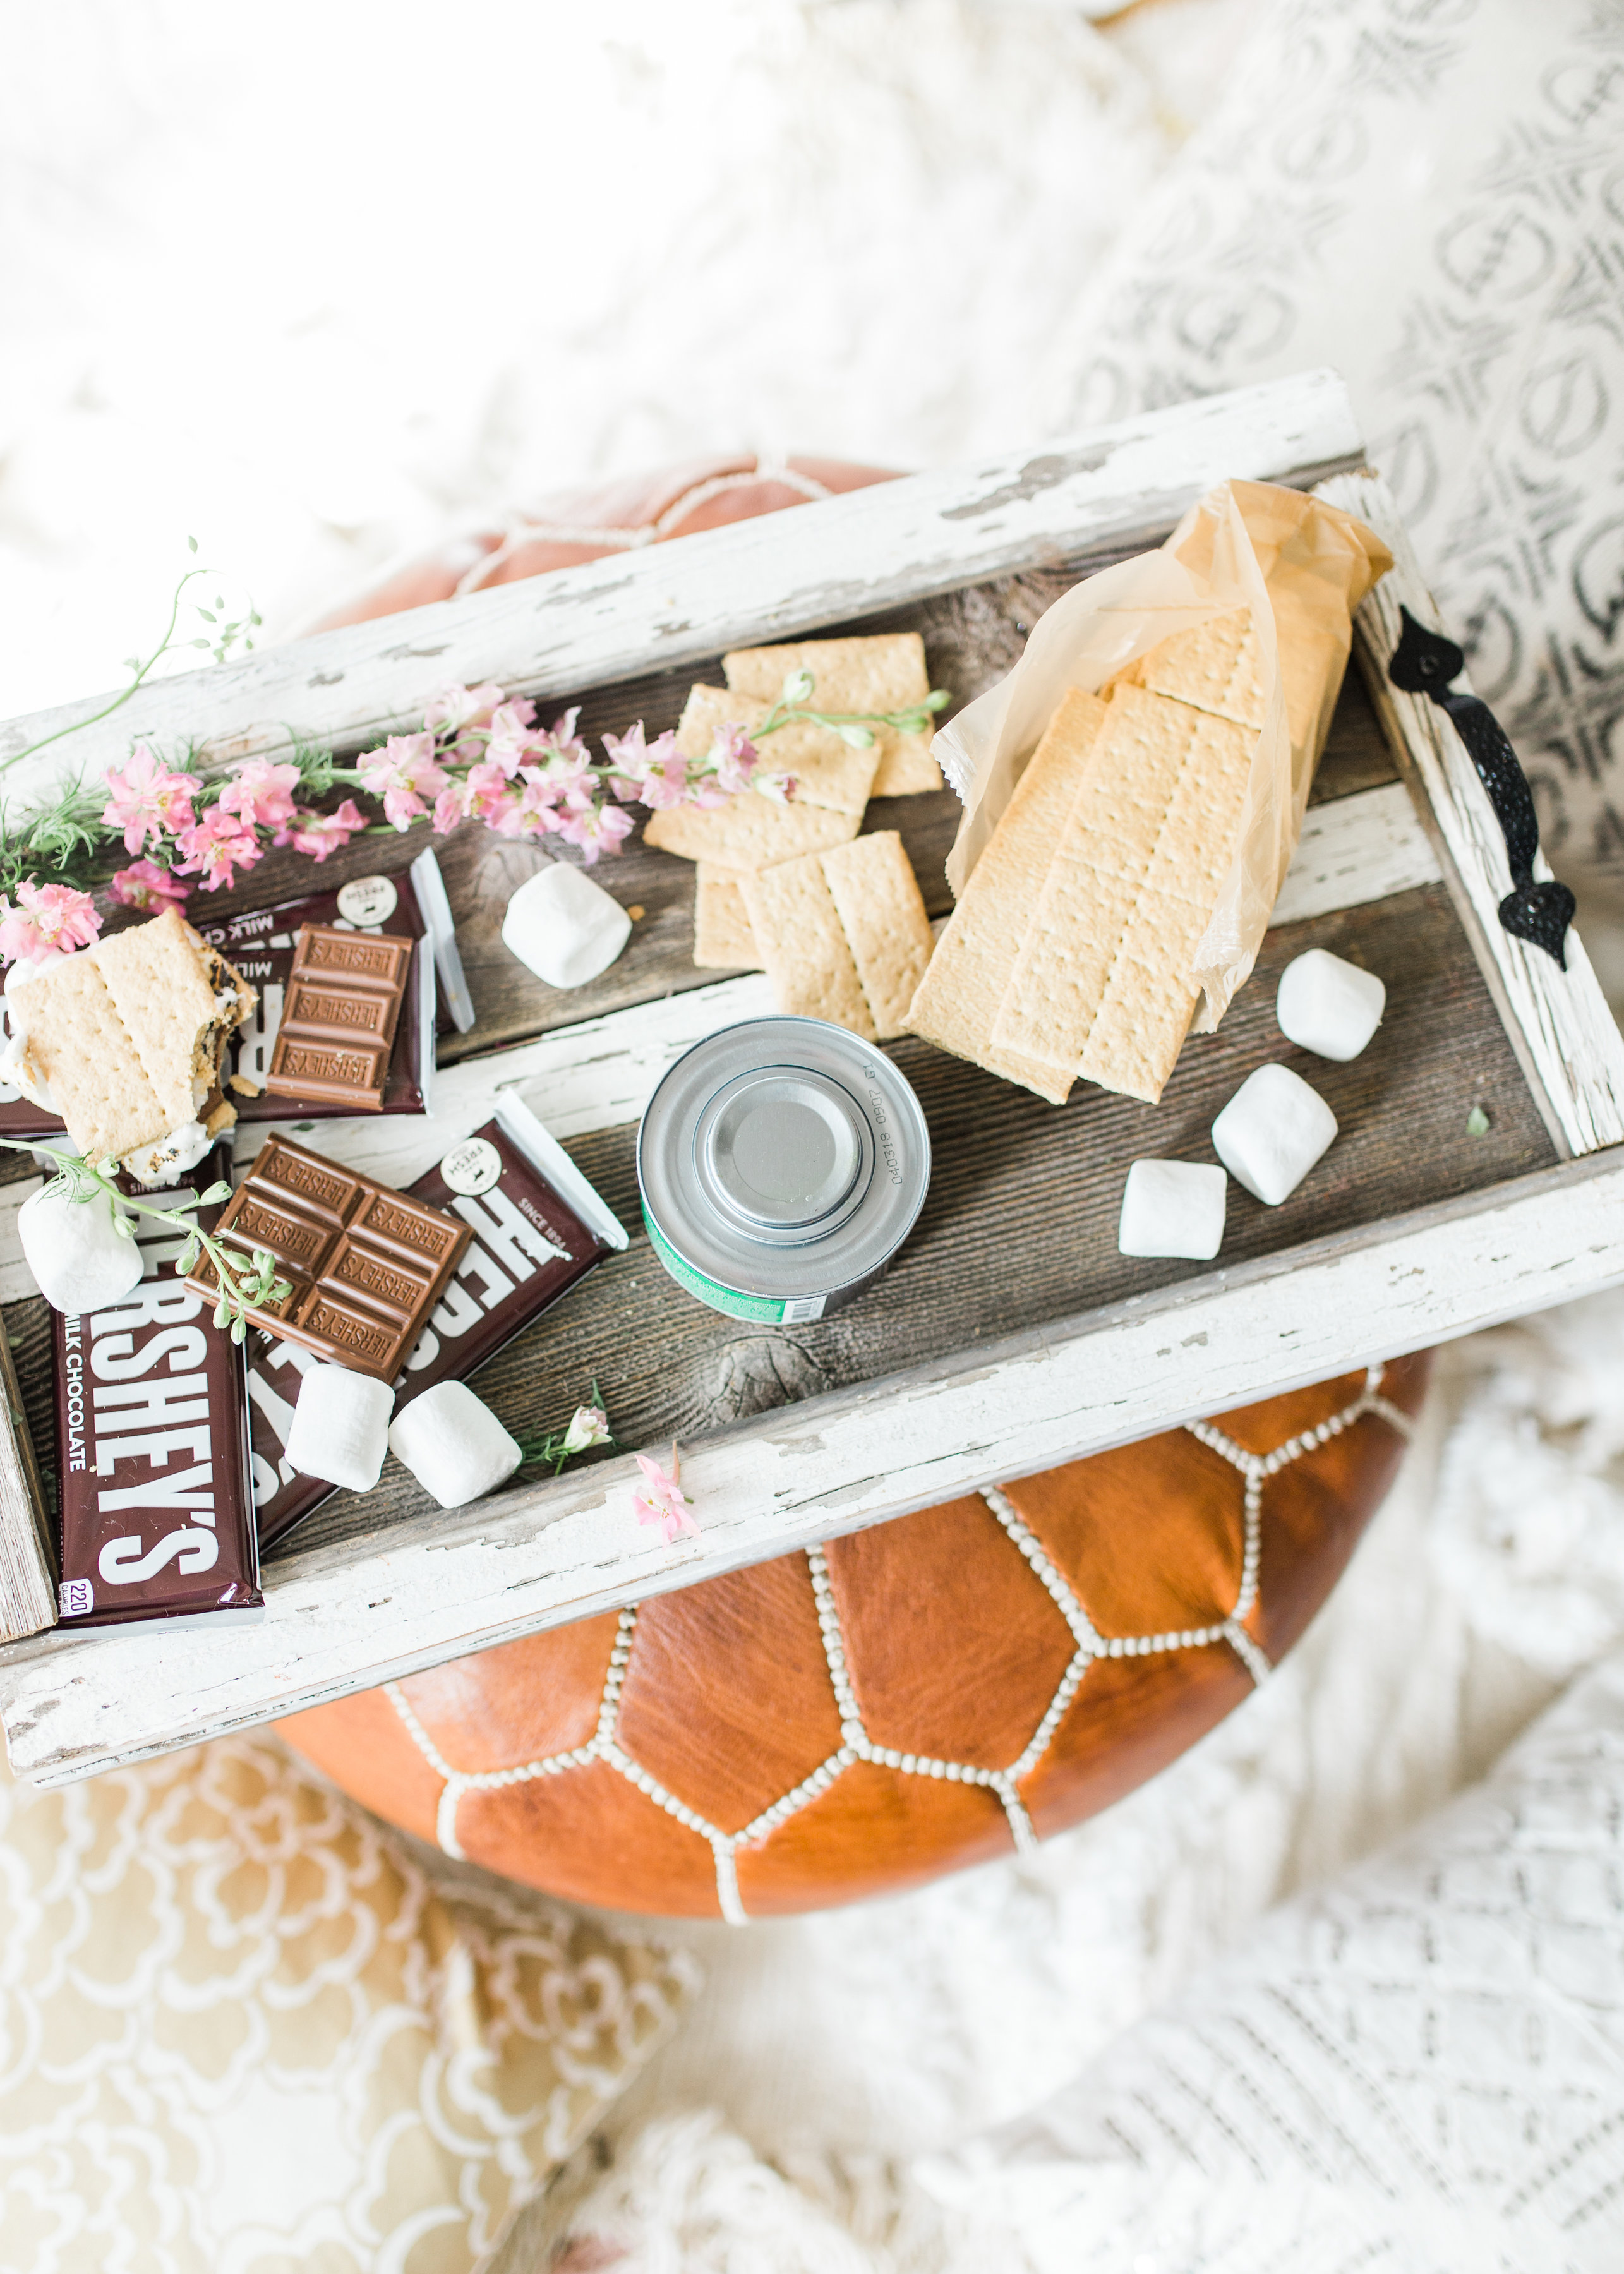 Want to plan a family fun night that is perfect for your gang this summer? Turn your living room into a campy lounge for an epic movie night with the kids, complete with indoor s'mores! #smores #indoorsmores #movienight #familynight #familyfun   glitterinc.com   @glitterinc